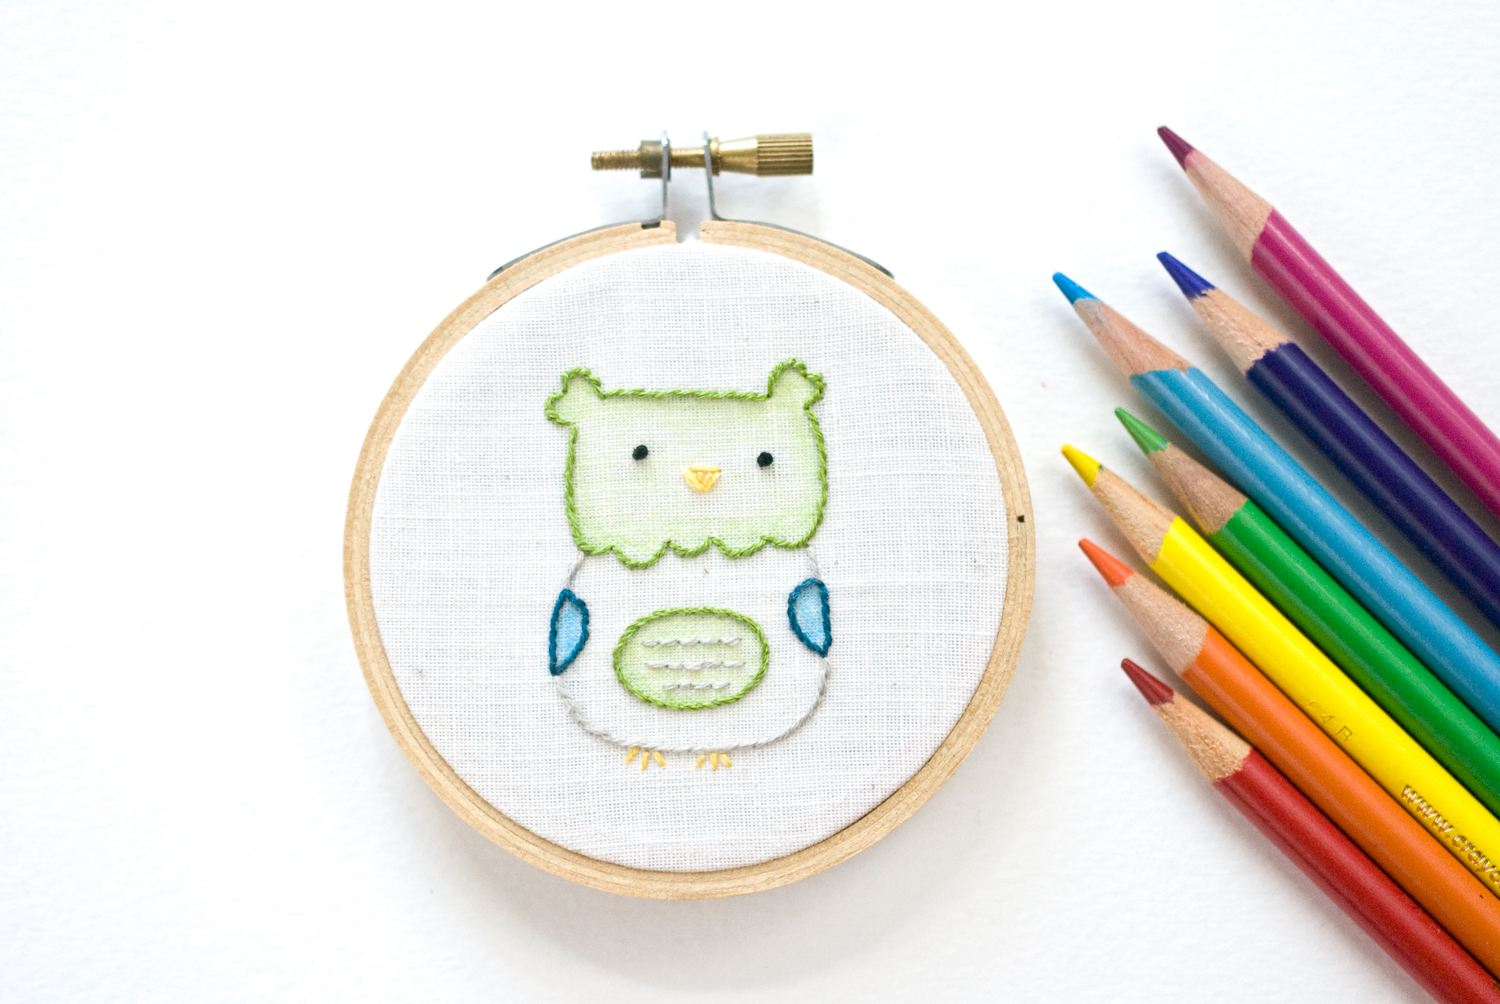 Completed embroidery in a hoop with colored pencils nearby.